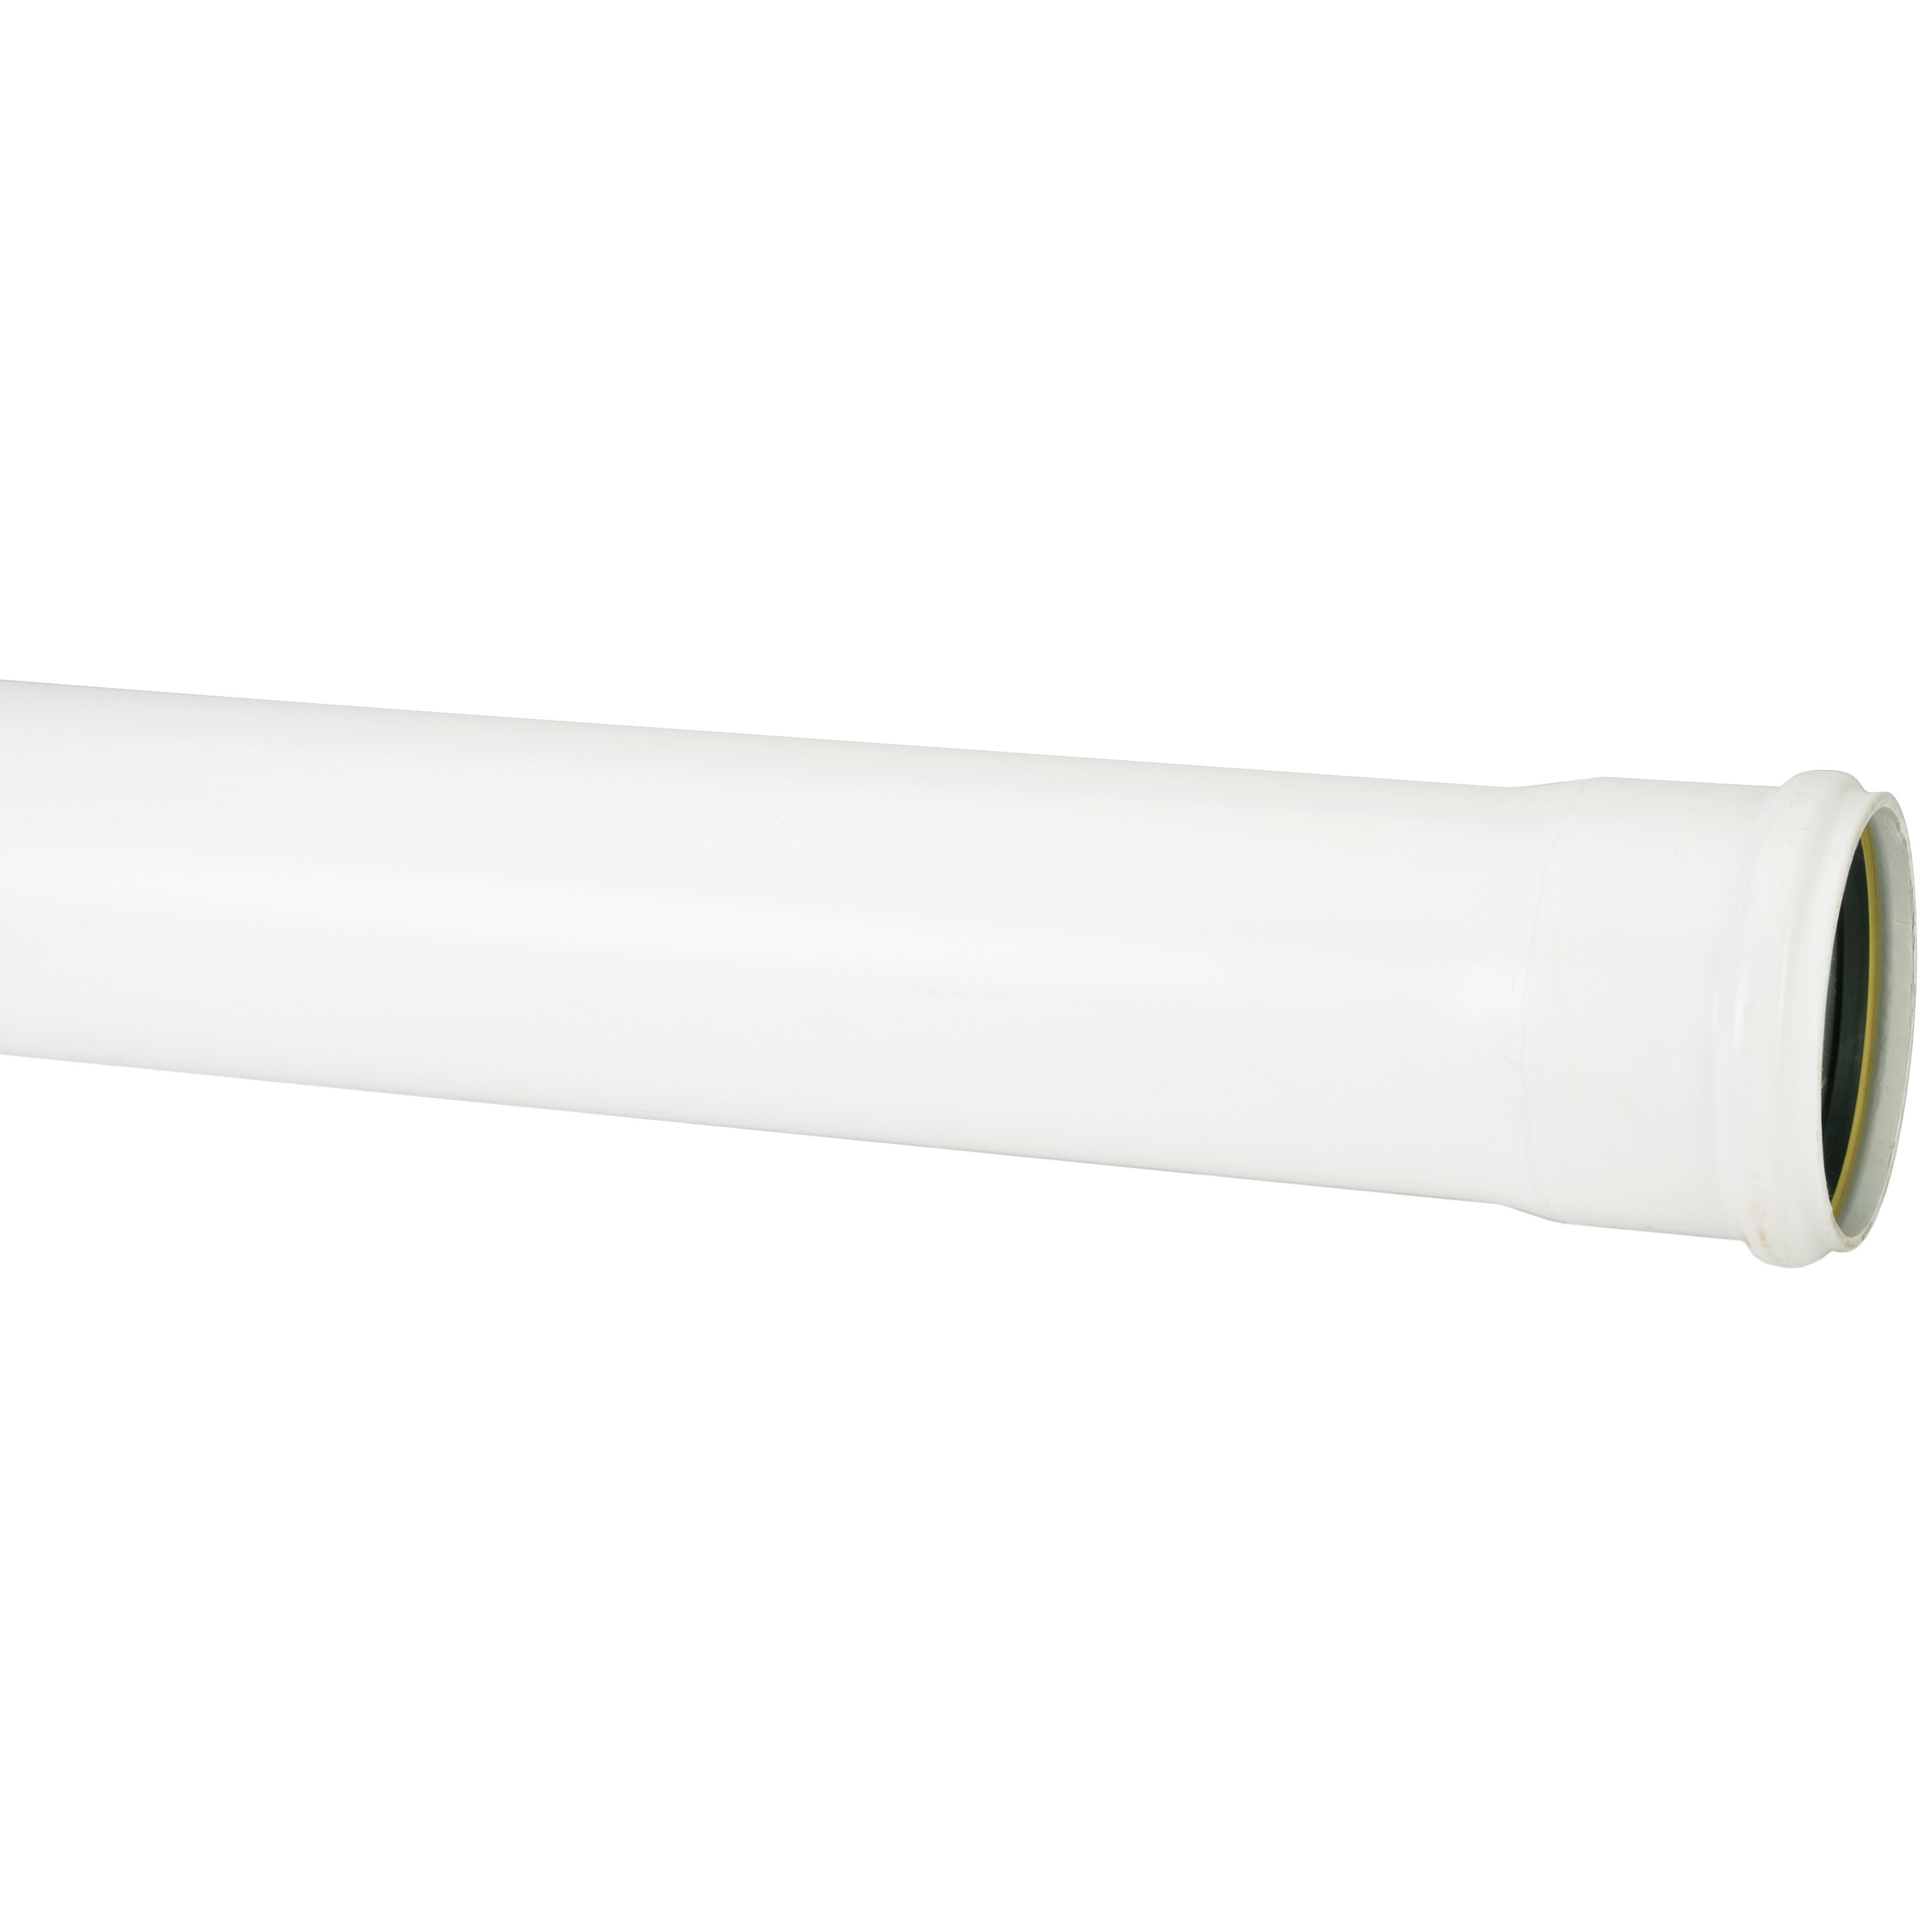 Polypipe 110mm Soil Single Socket Pipe - White, 3 metre